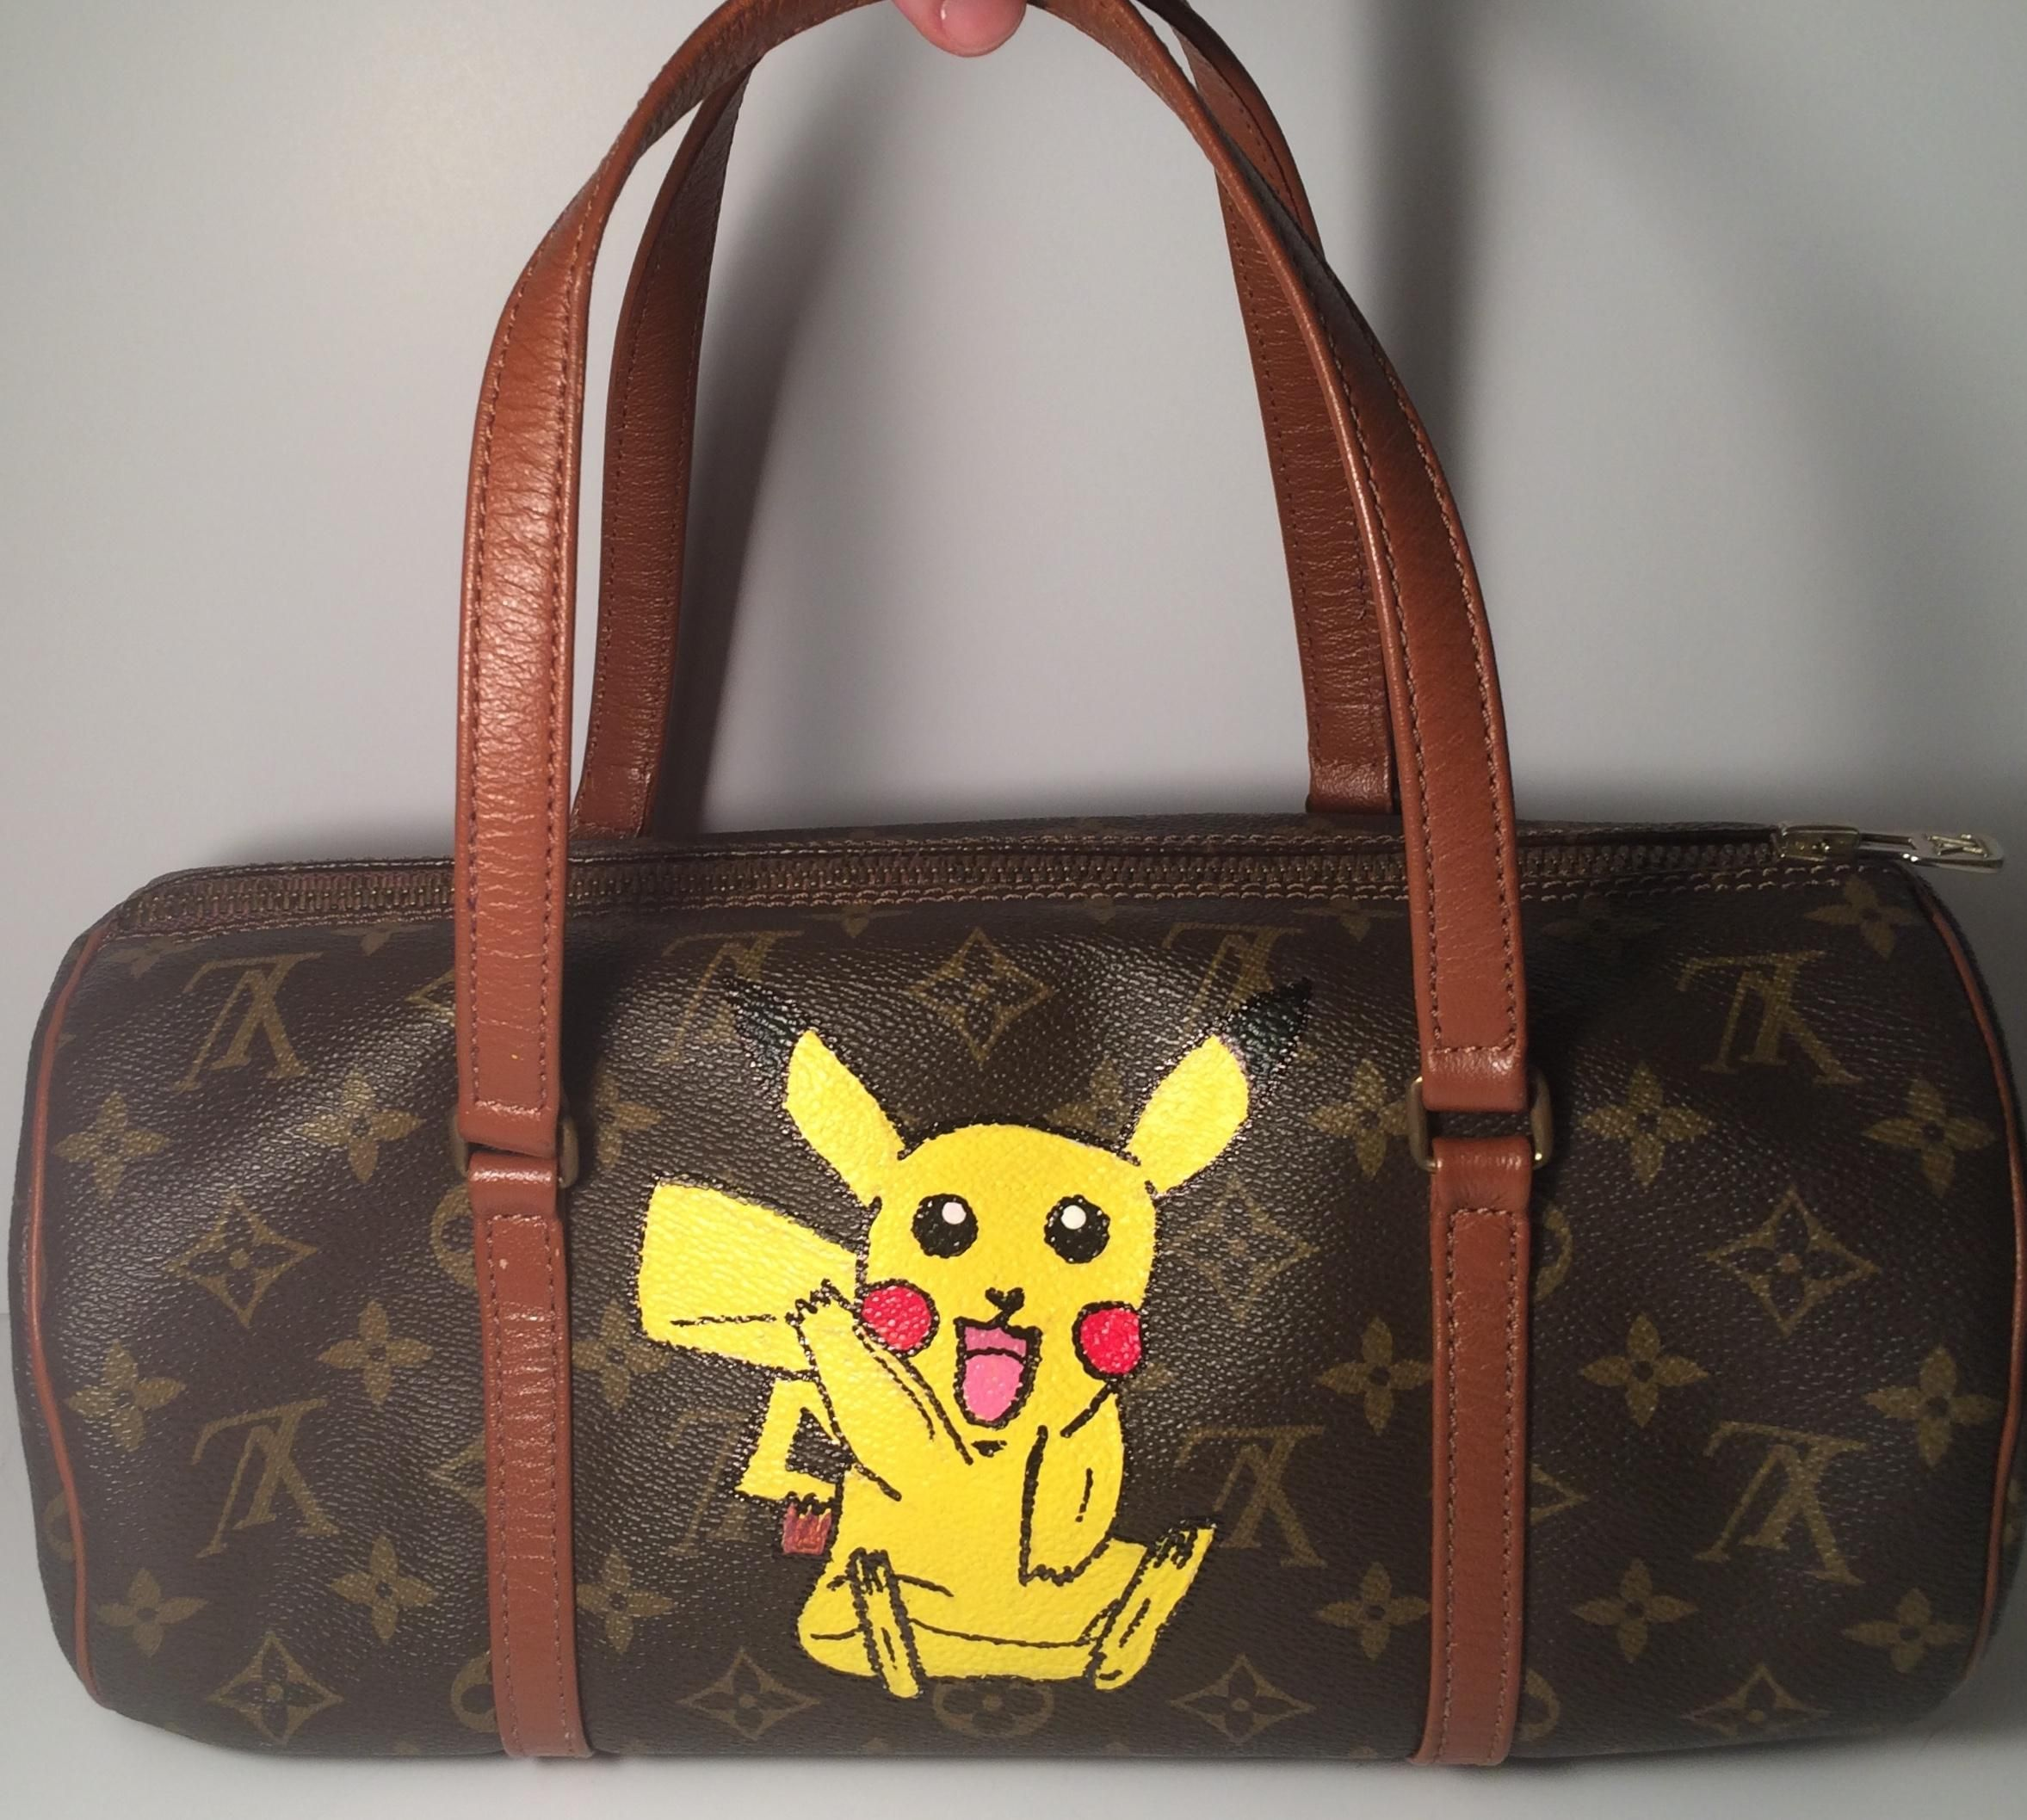 477fa4c35b6 Louis Vuitton Papillon 30 844 Pokemon Inspired Handbag Brown Monogram Tote  Bag. Get one of the hottest styles of the season! The Louis…